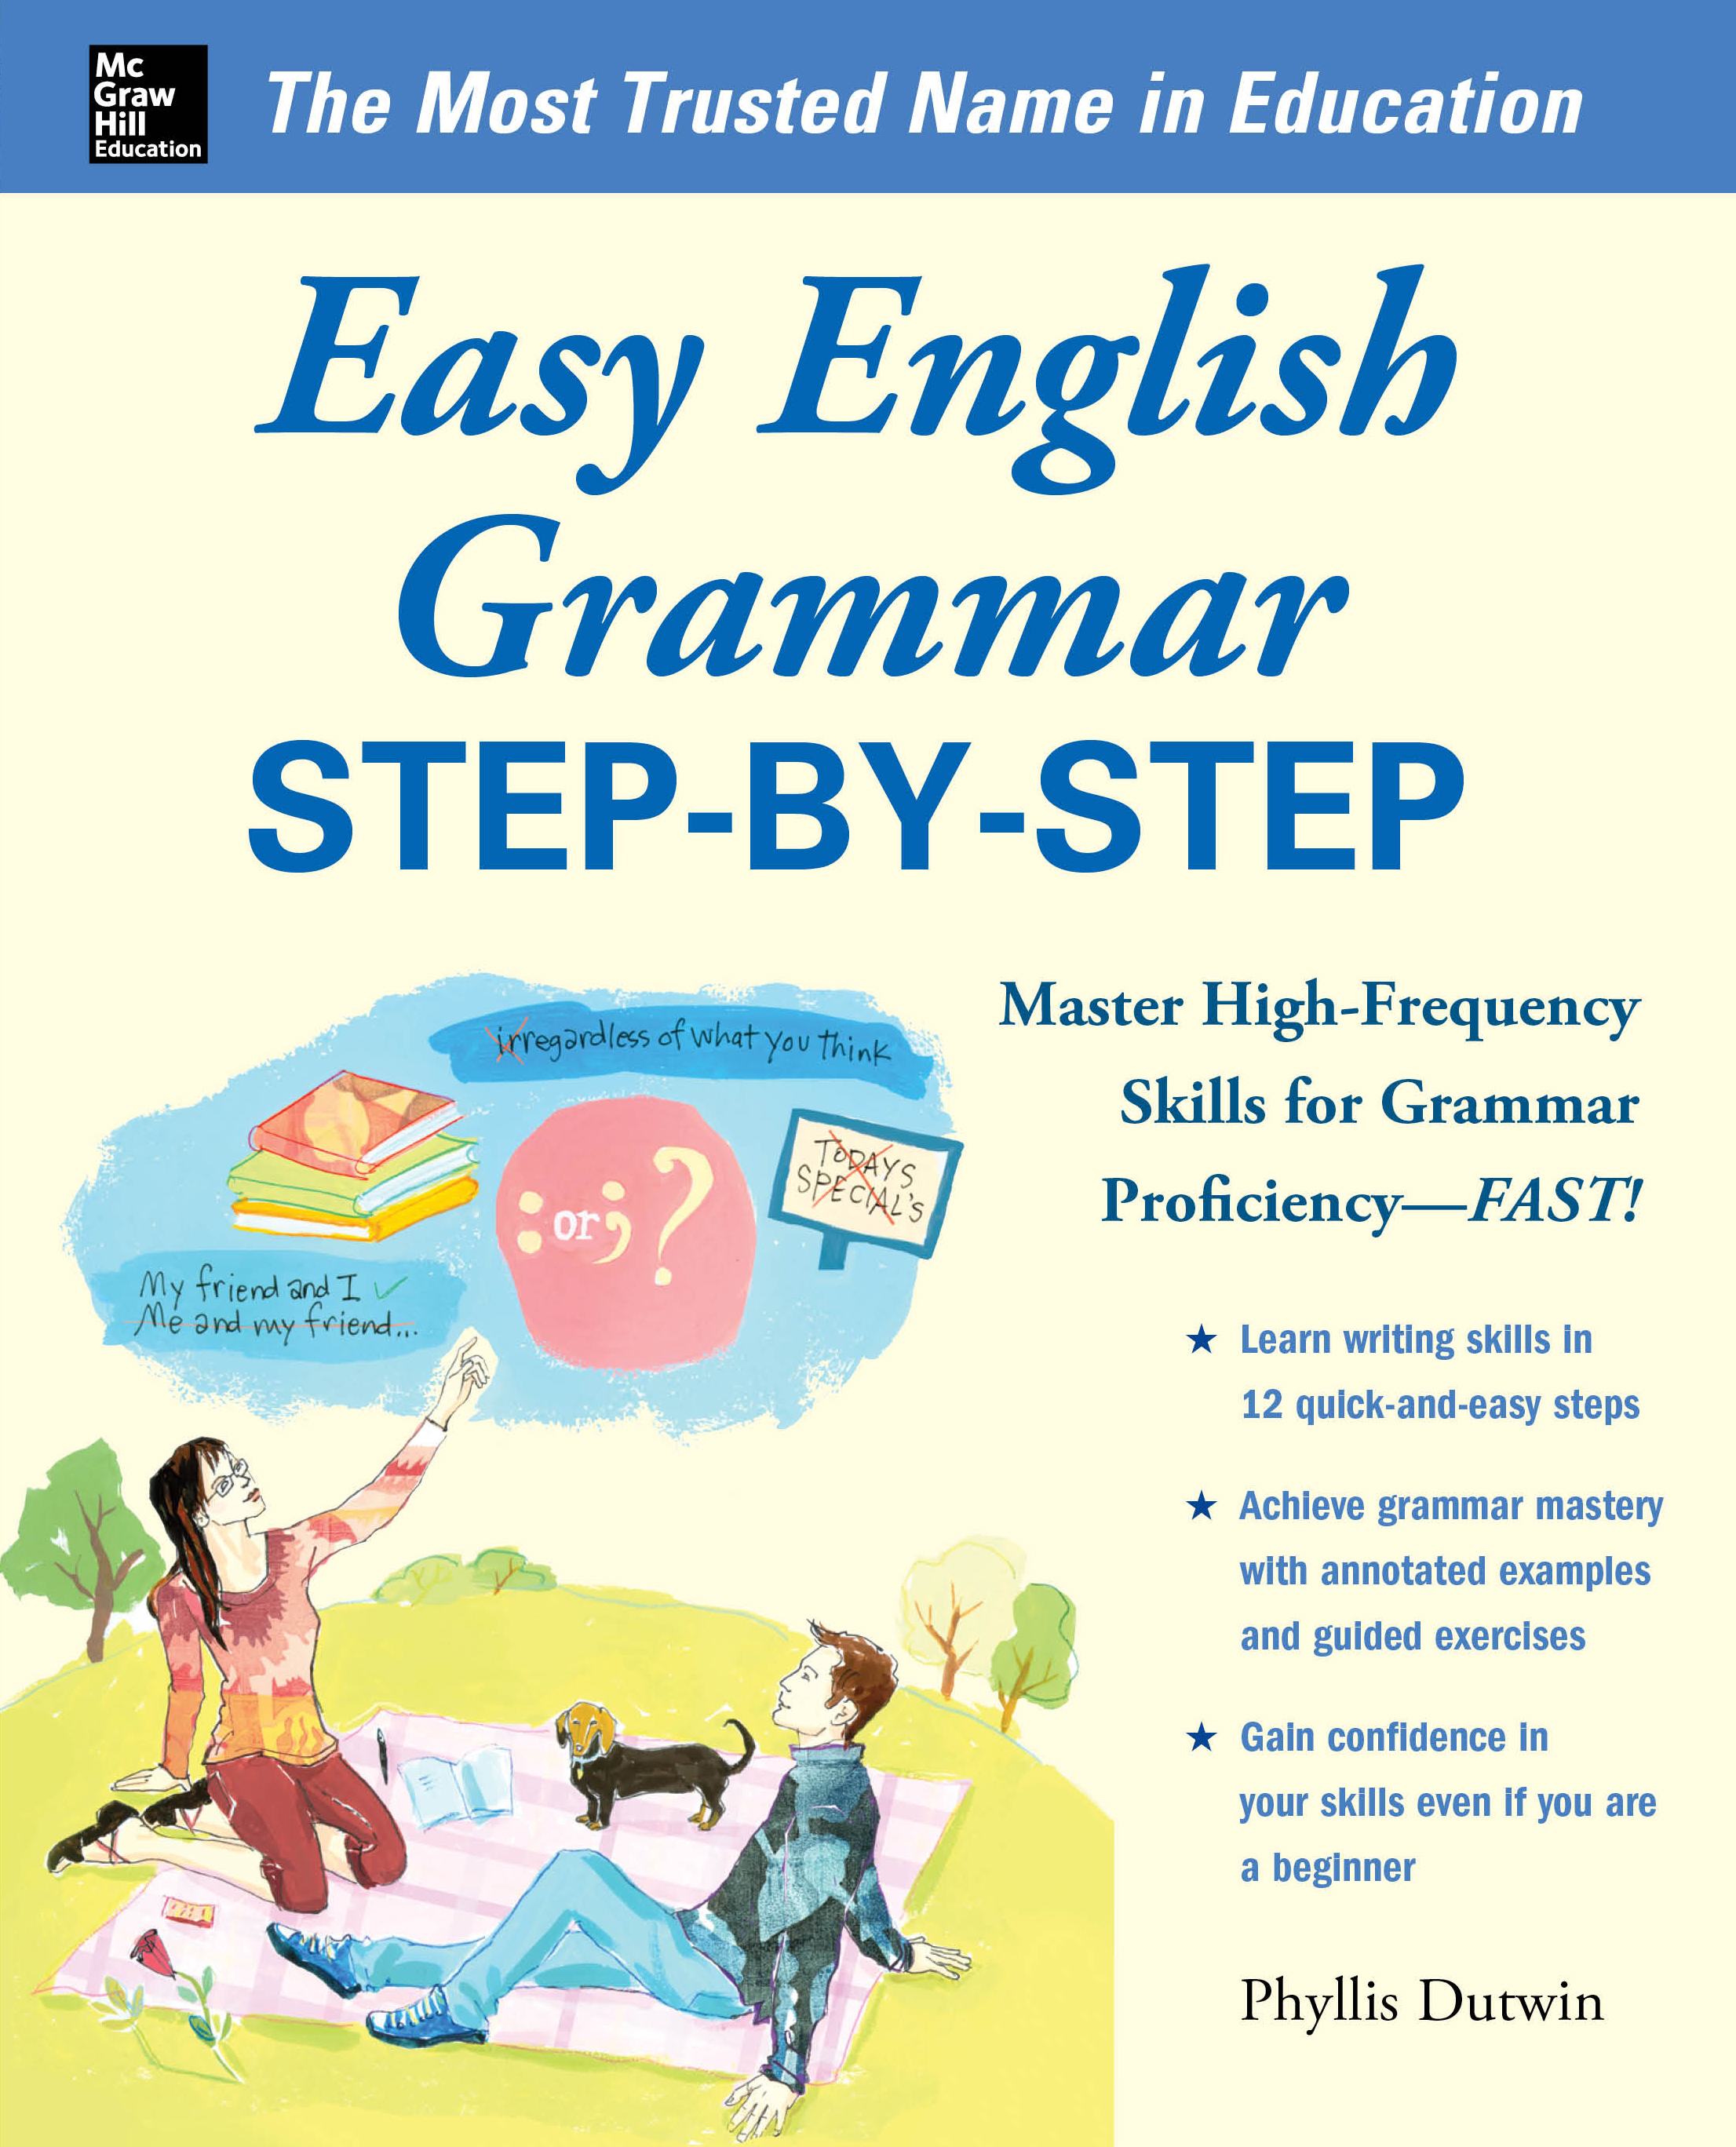 Download Ebook Easy English Grammar Step-by-Step by Phyllis Dutwin Pdf